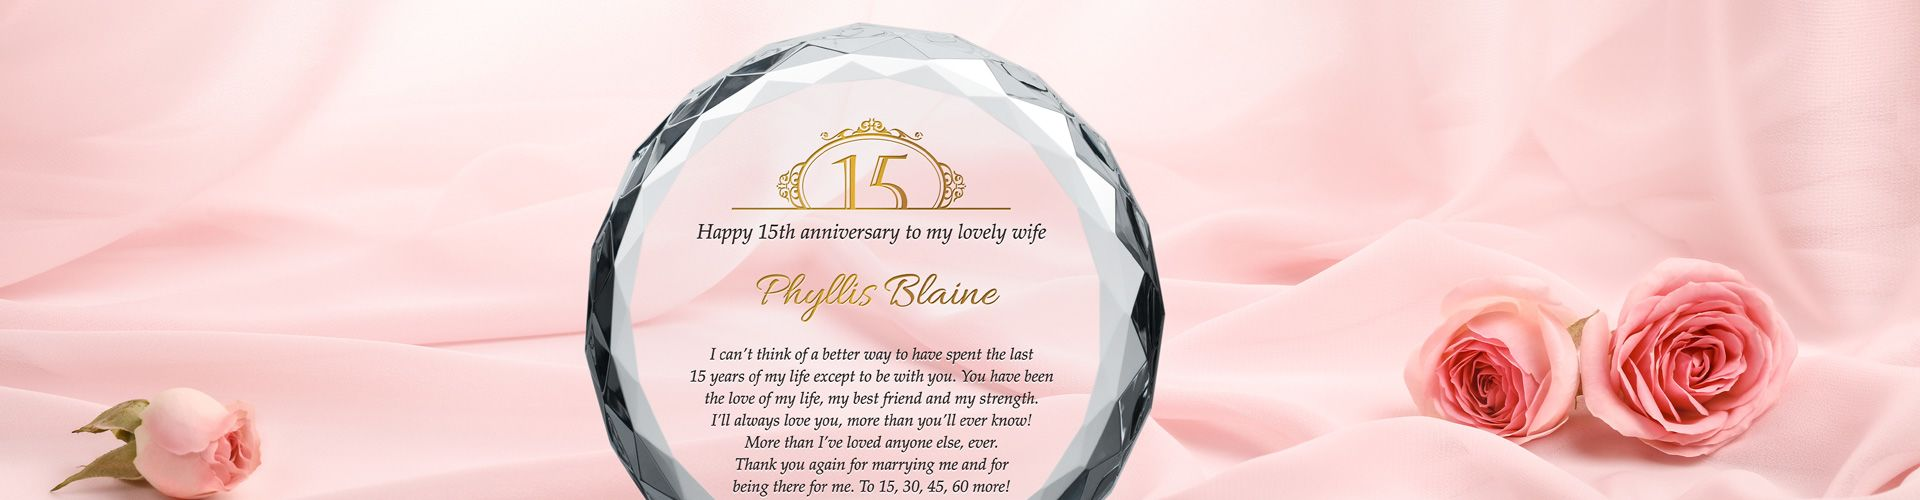 Personalized Crystal Wedding Anniversary Gifts Diy Awards